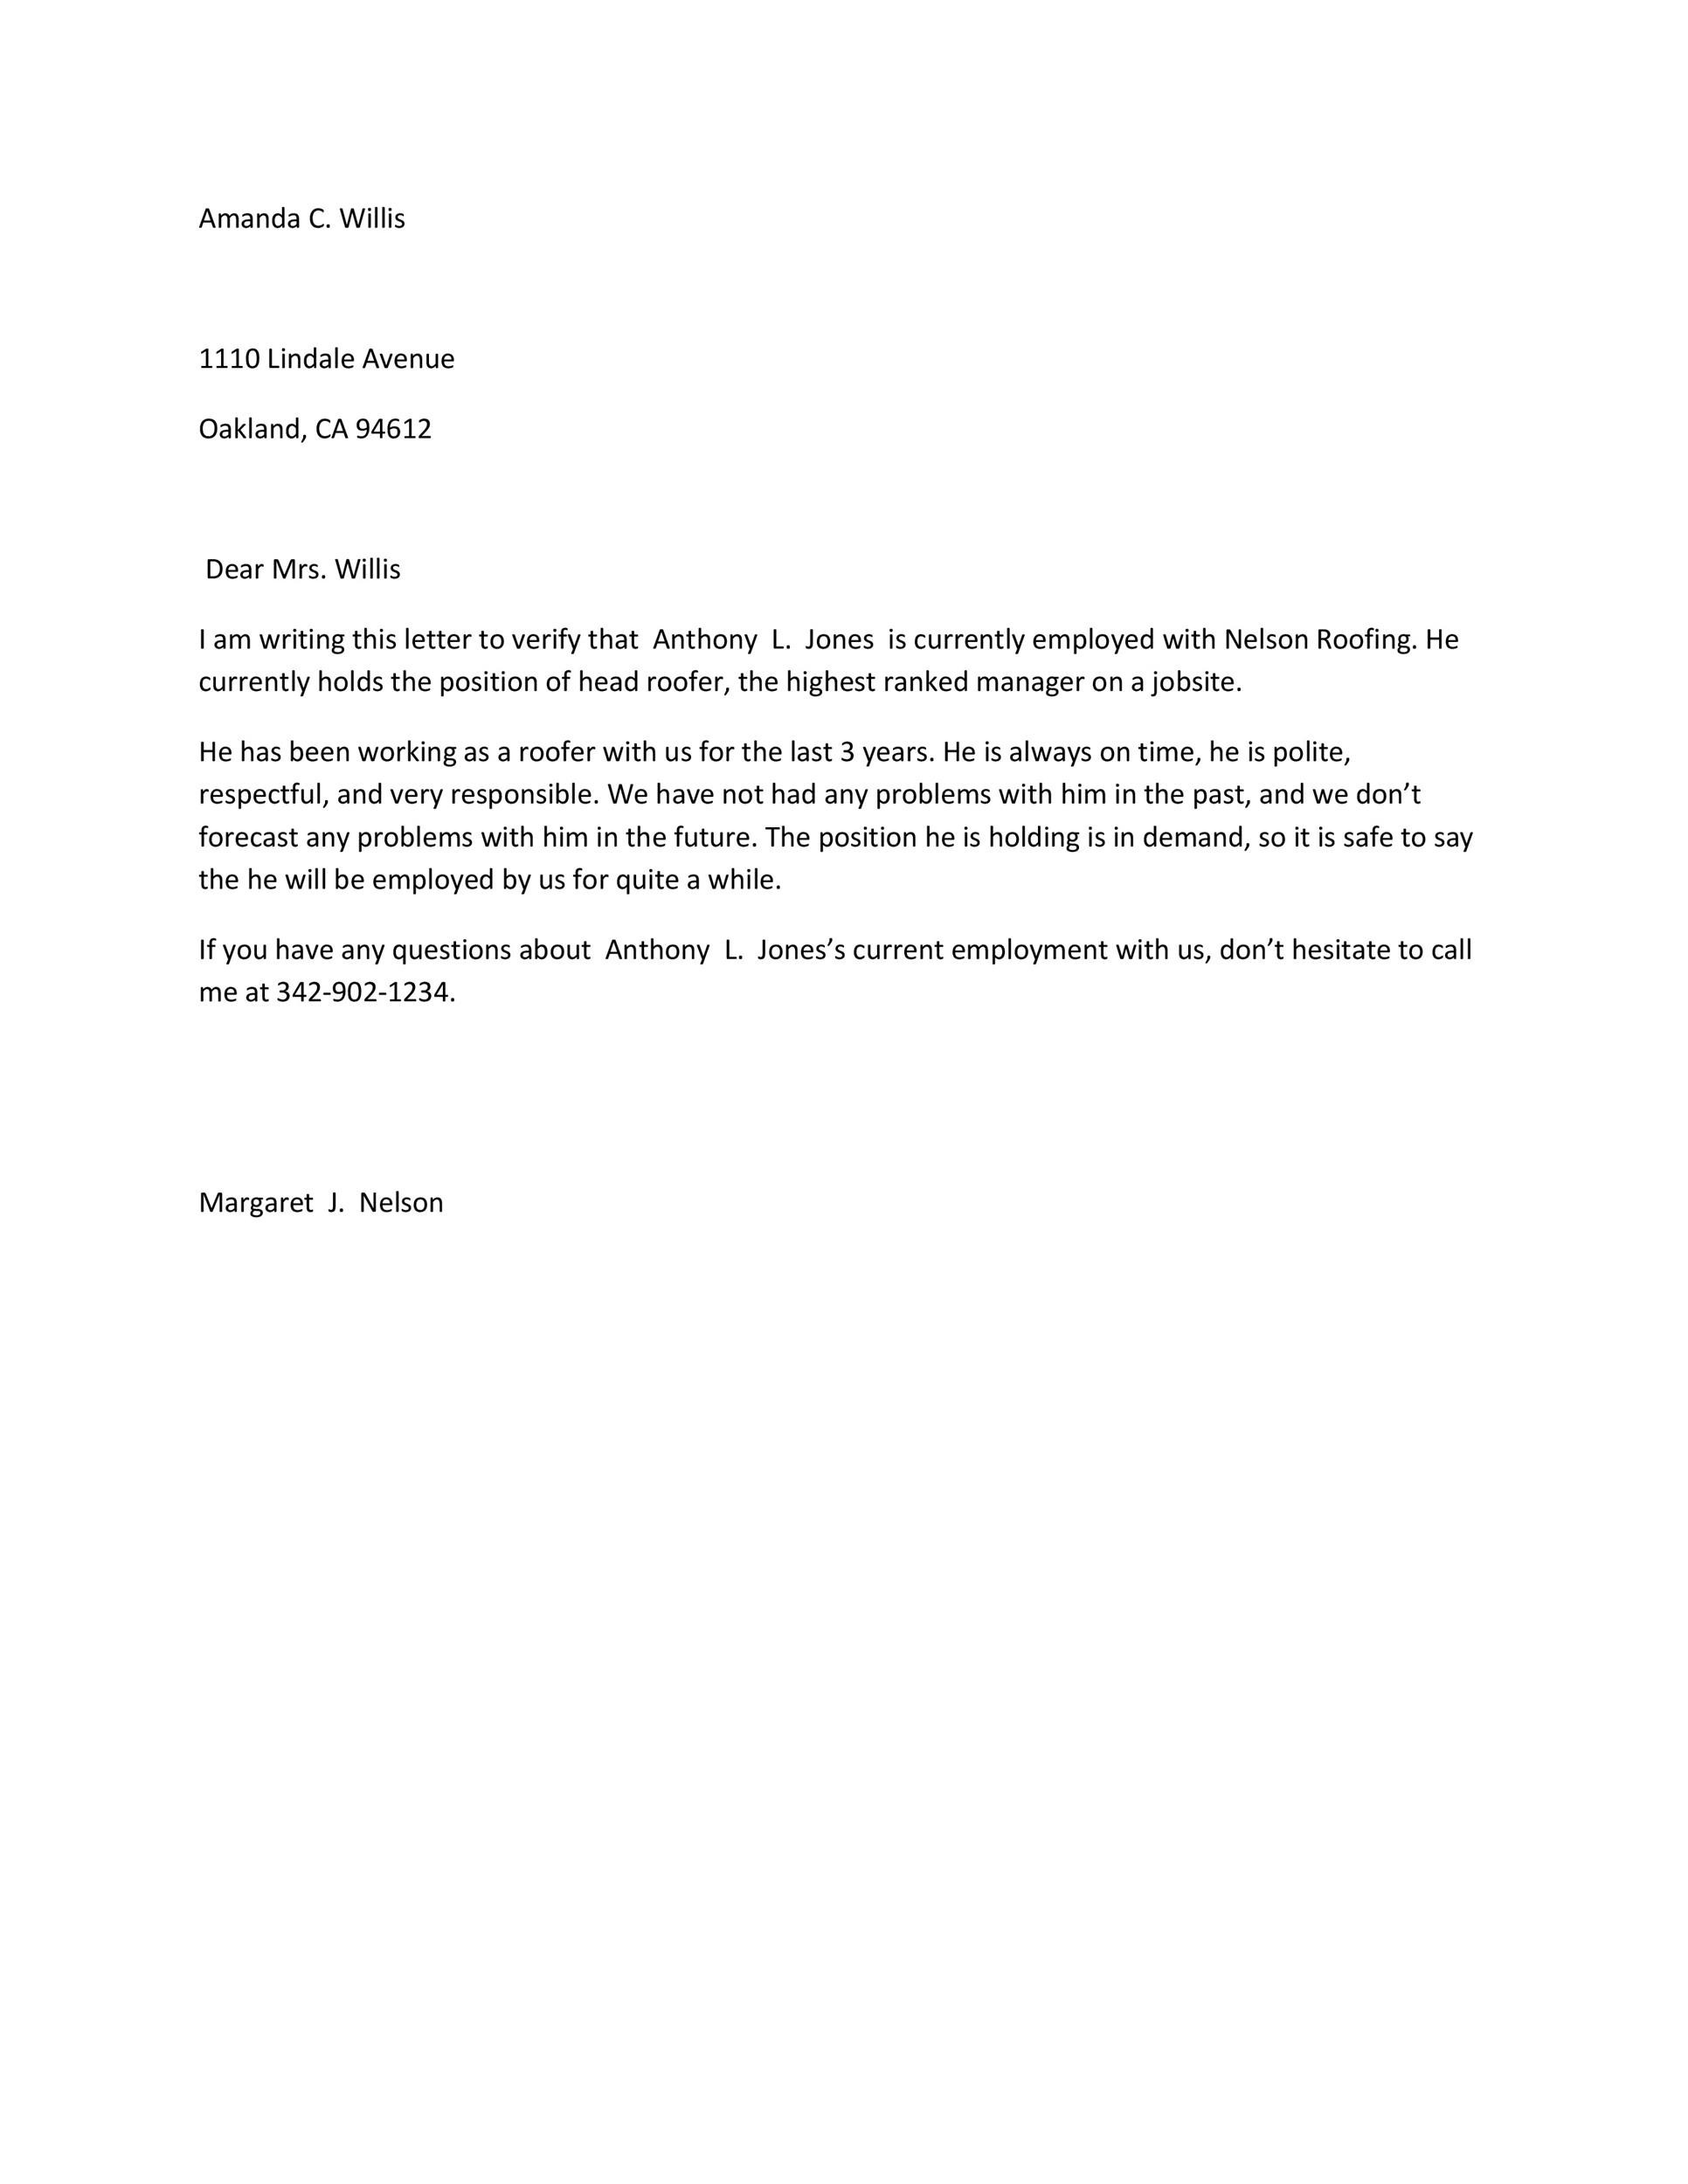 Confirmation of employment letter template idealstalist confirmation of employment letter template yelopaper Choice Image